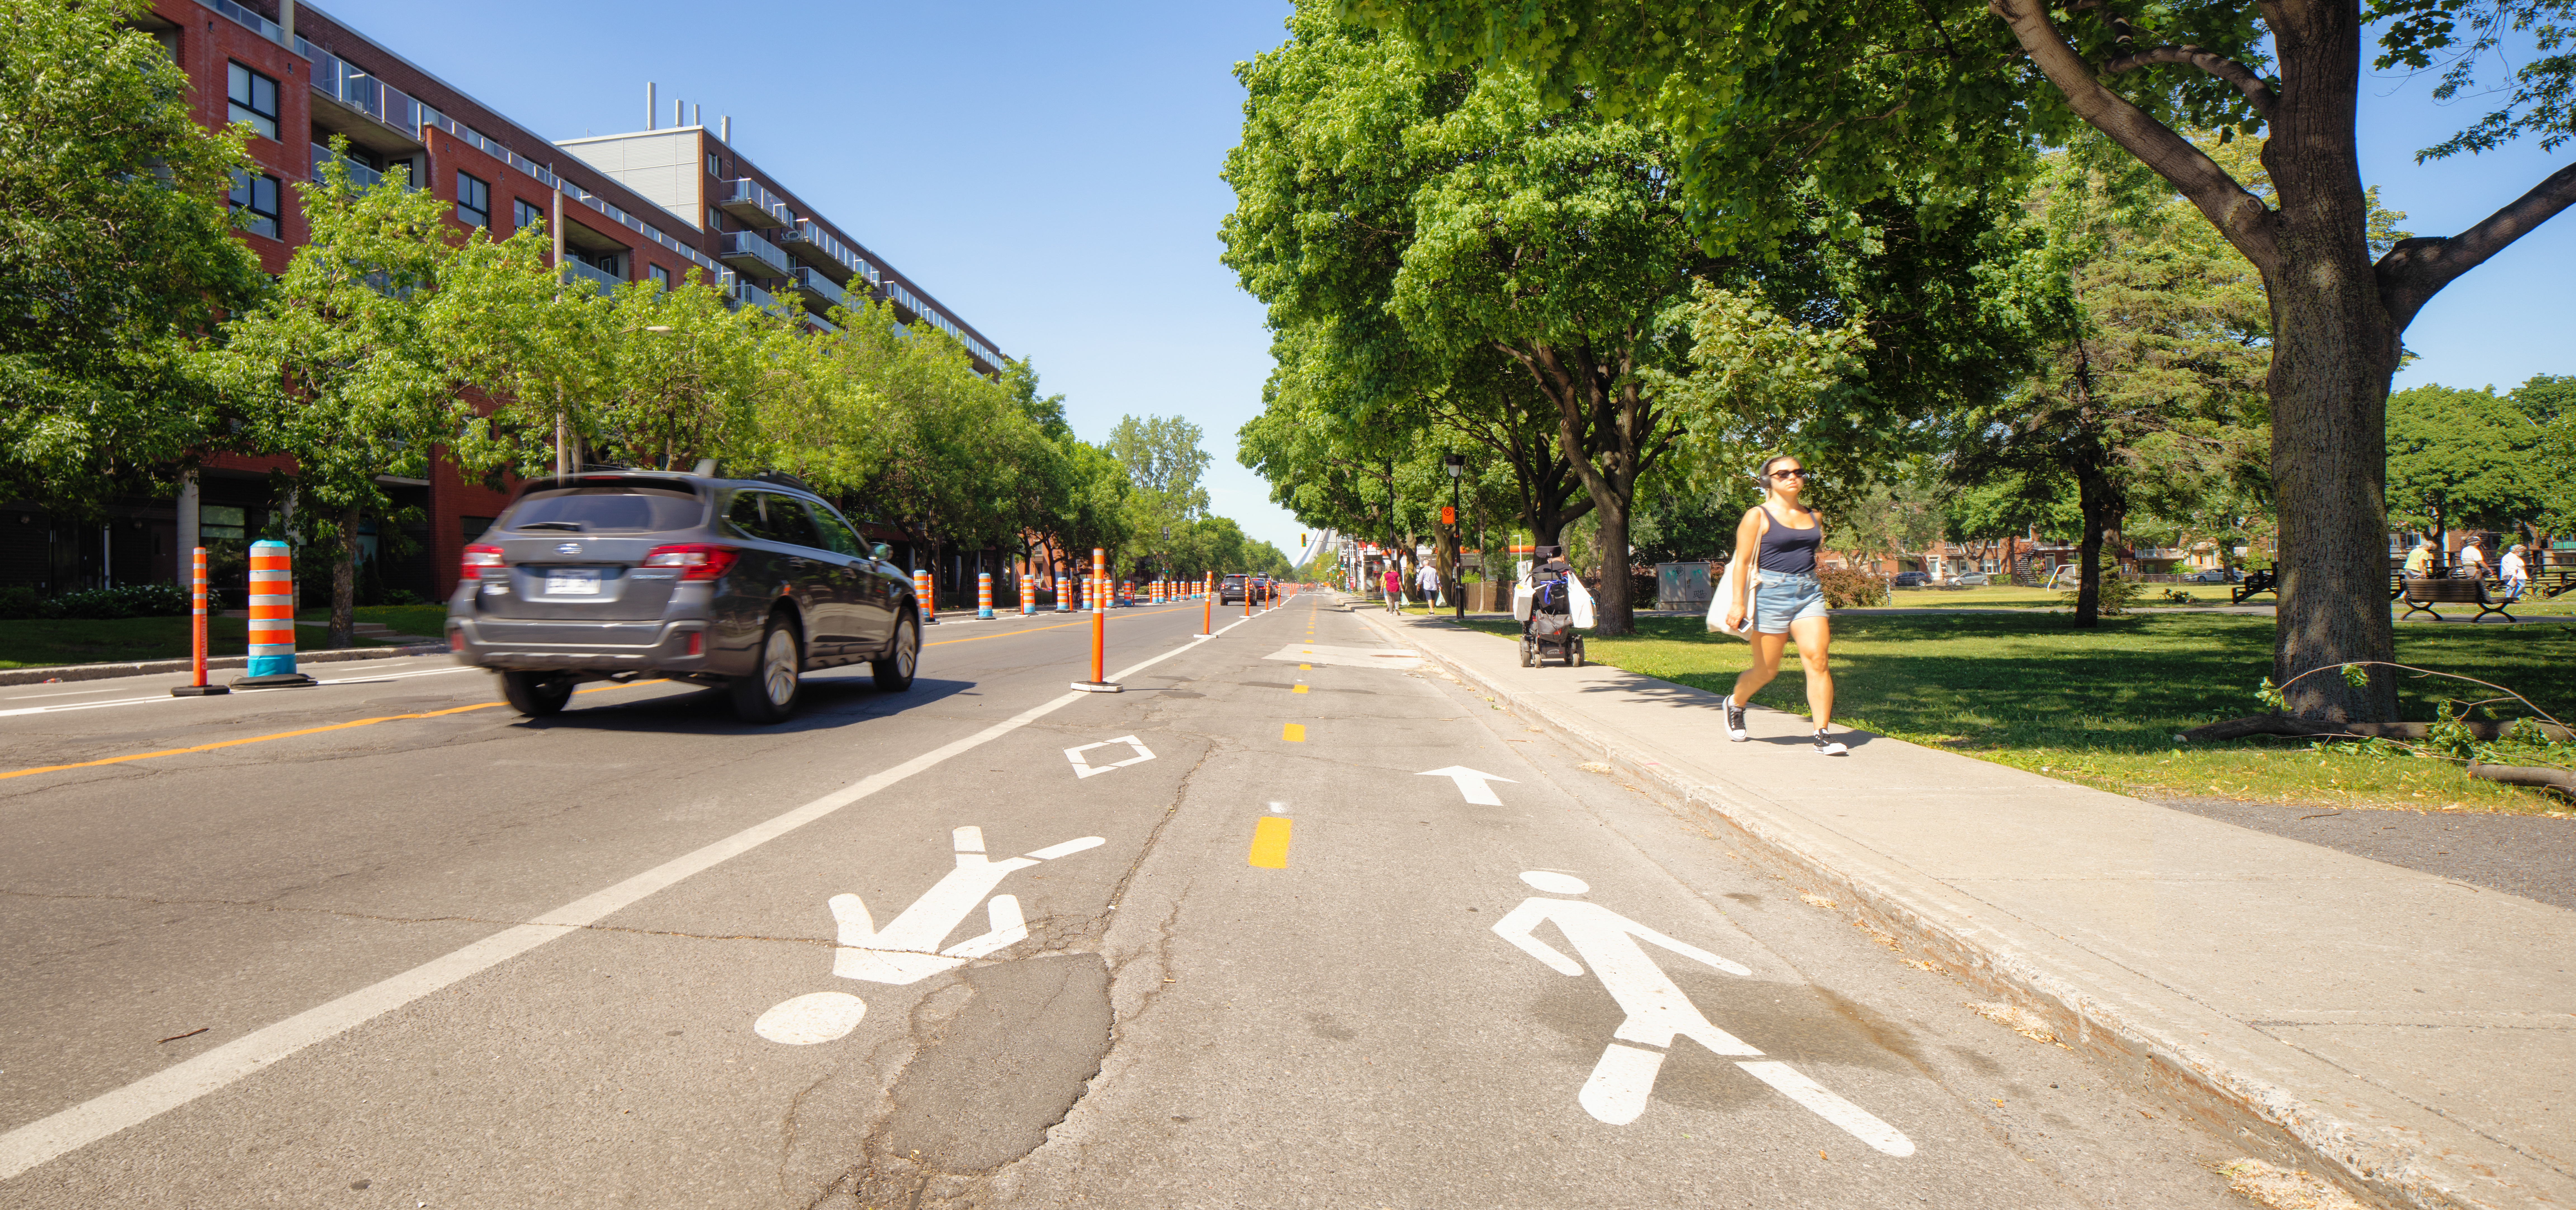 Pedestrian lanes added to the streets of Montreal.